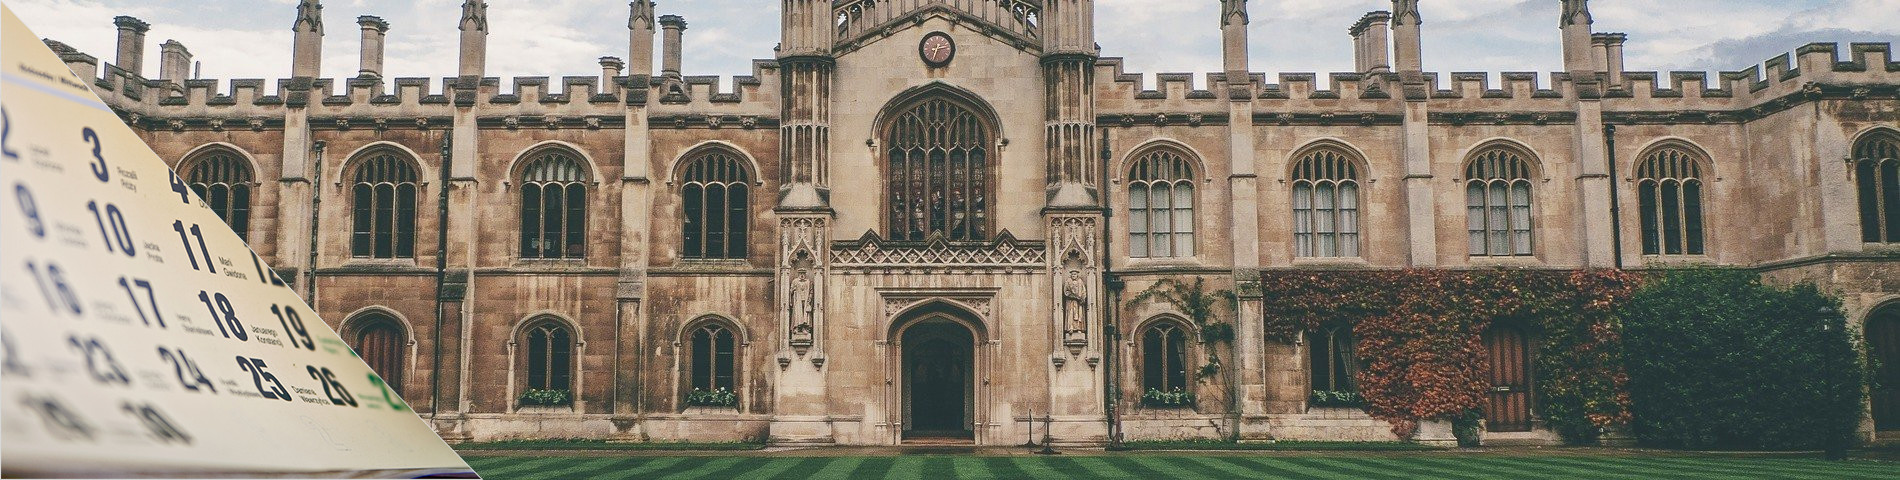 Cambridge - Inglese annuale